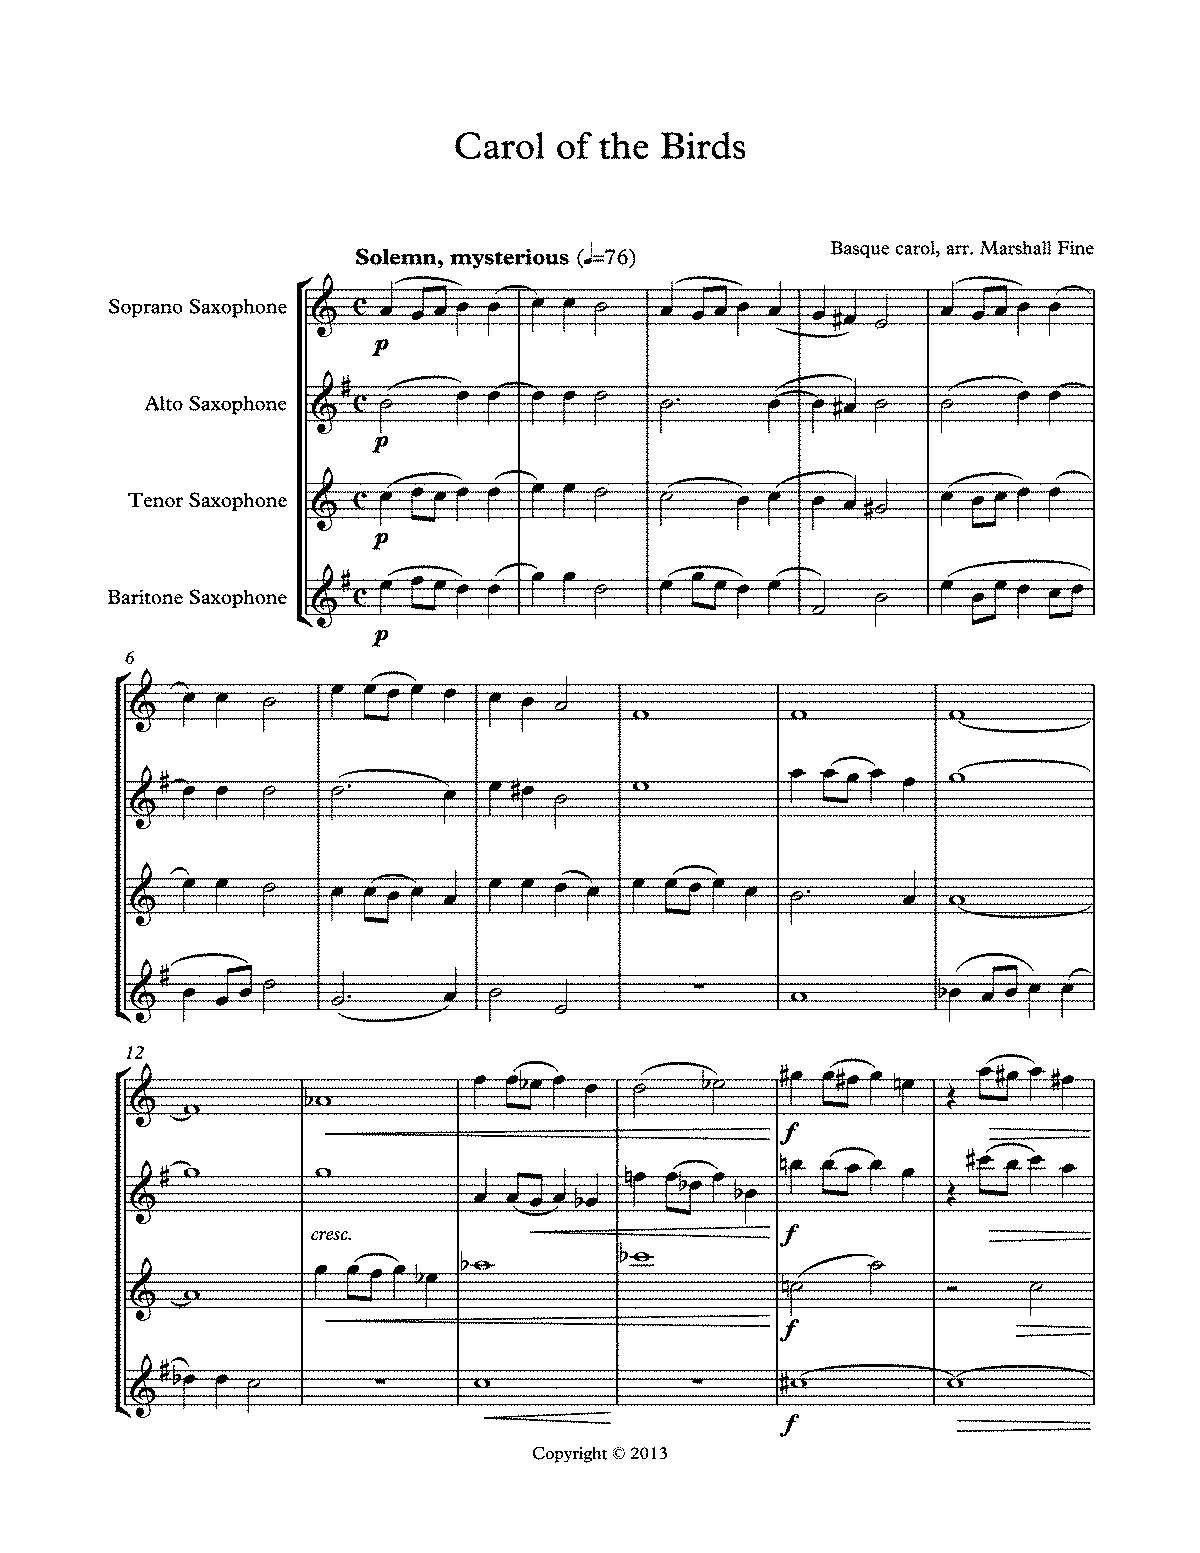 PMLP550346-Sax Carol of the Birds - score and parts.pdf